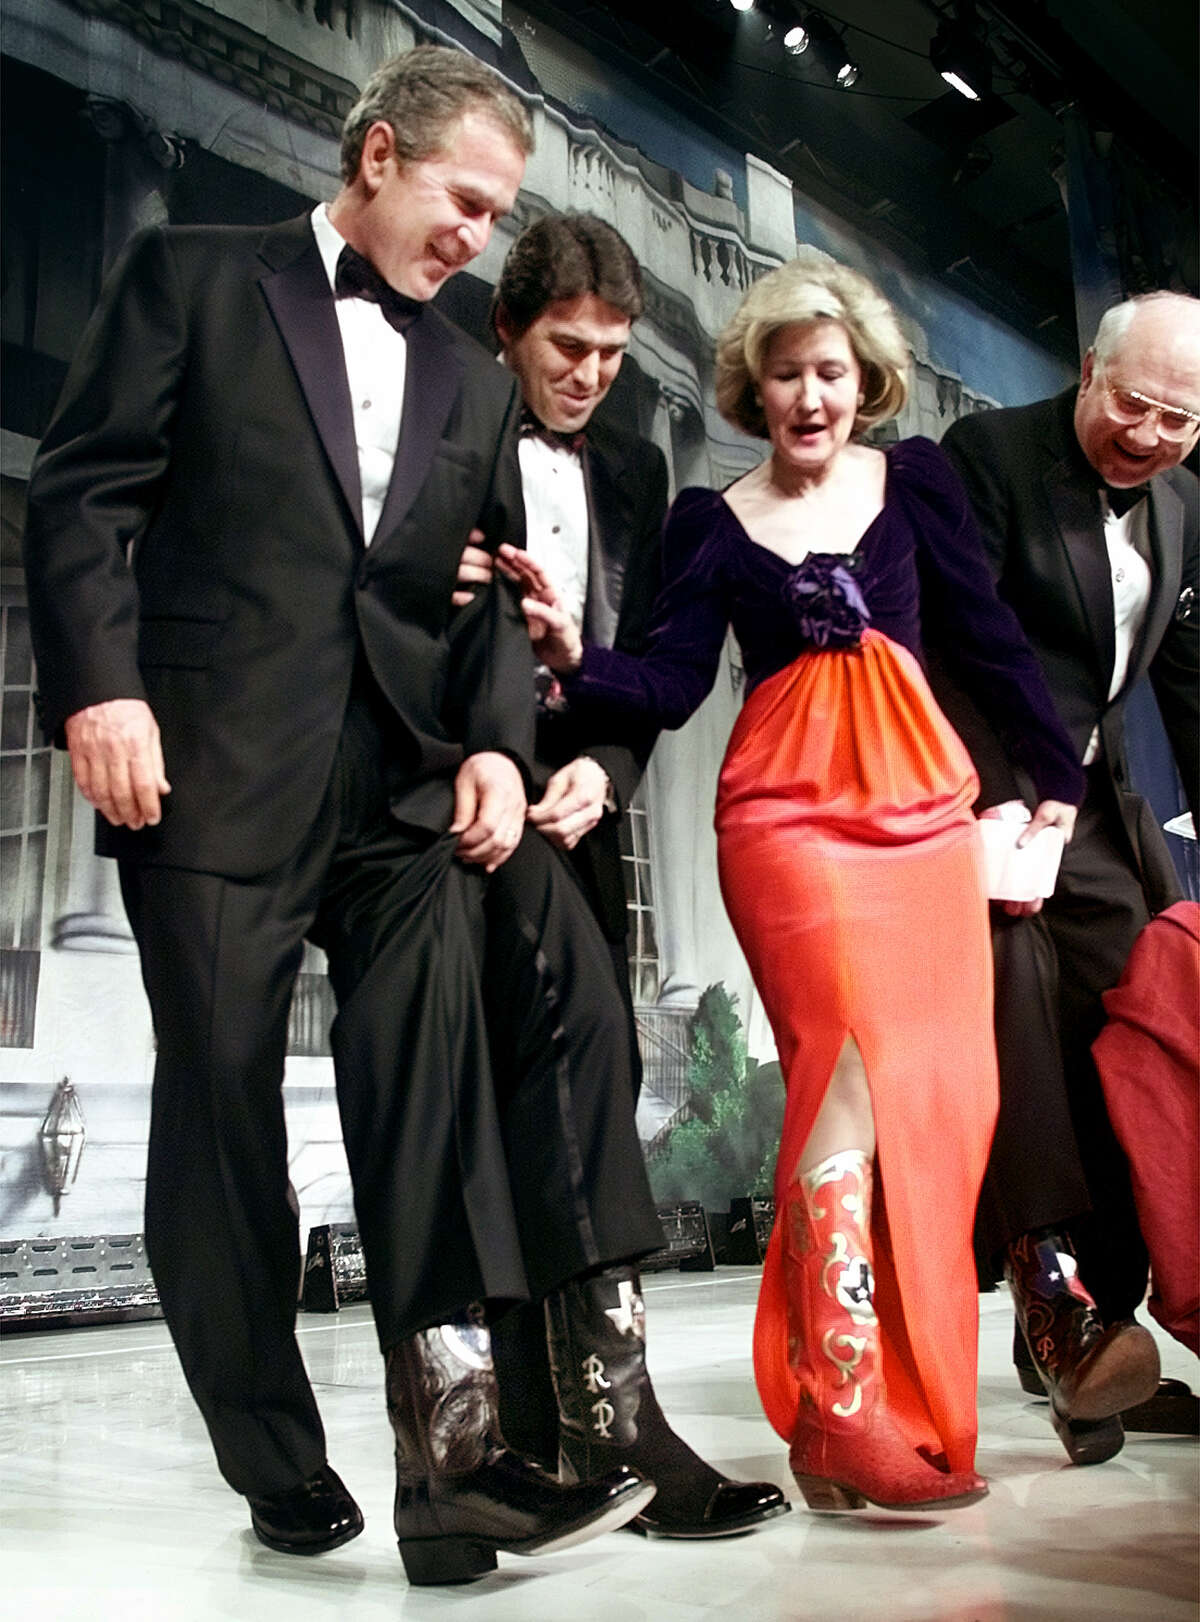 From left: President-elect Bush compares boots with Tex. Gov. Rick Perry, Sen. Kay Bailey Hutchison (R-Texas) and Sen. Phil Gramm (R-Texas) on stage during the Black Tie and Boots ball in Washington Friday night, Jan. 19, 2001. (AP Photo/Pablo Martinez Monsivais) HOUCHRON CAPTION (02/18/2001): What do President George W. Bush, Gov. Rick Perry and Sens. Kay Bailey Hutchison and Phil Gramm have in common? They all wear custom creations by Houston boot maker Rocky Carroll at the Texas Black Tie & Boots party held in conjunction with the presidential inauguration. HOUCHRON CAPTION (10/20/2002): At a ball the night before his Jan. 20 inauguration, President-elect Bush, left, Gov. Rick Perry and U.S. Sen. Kay Bailey Hutchison danced in Carroll originals.